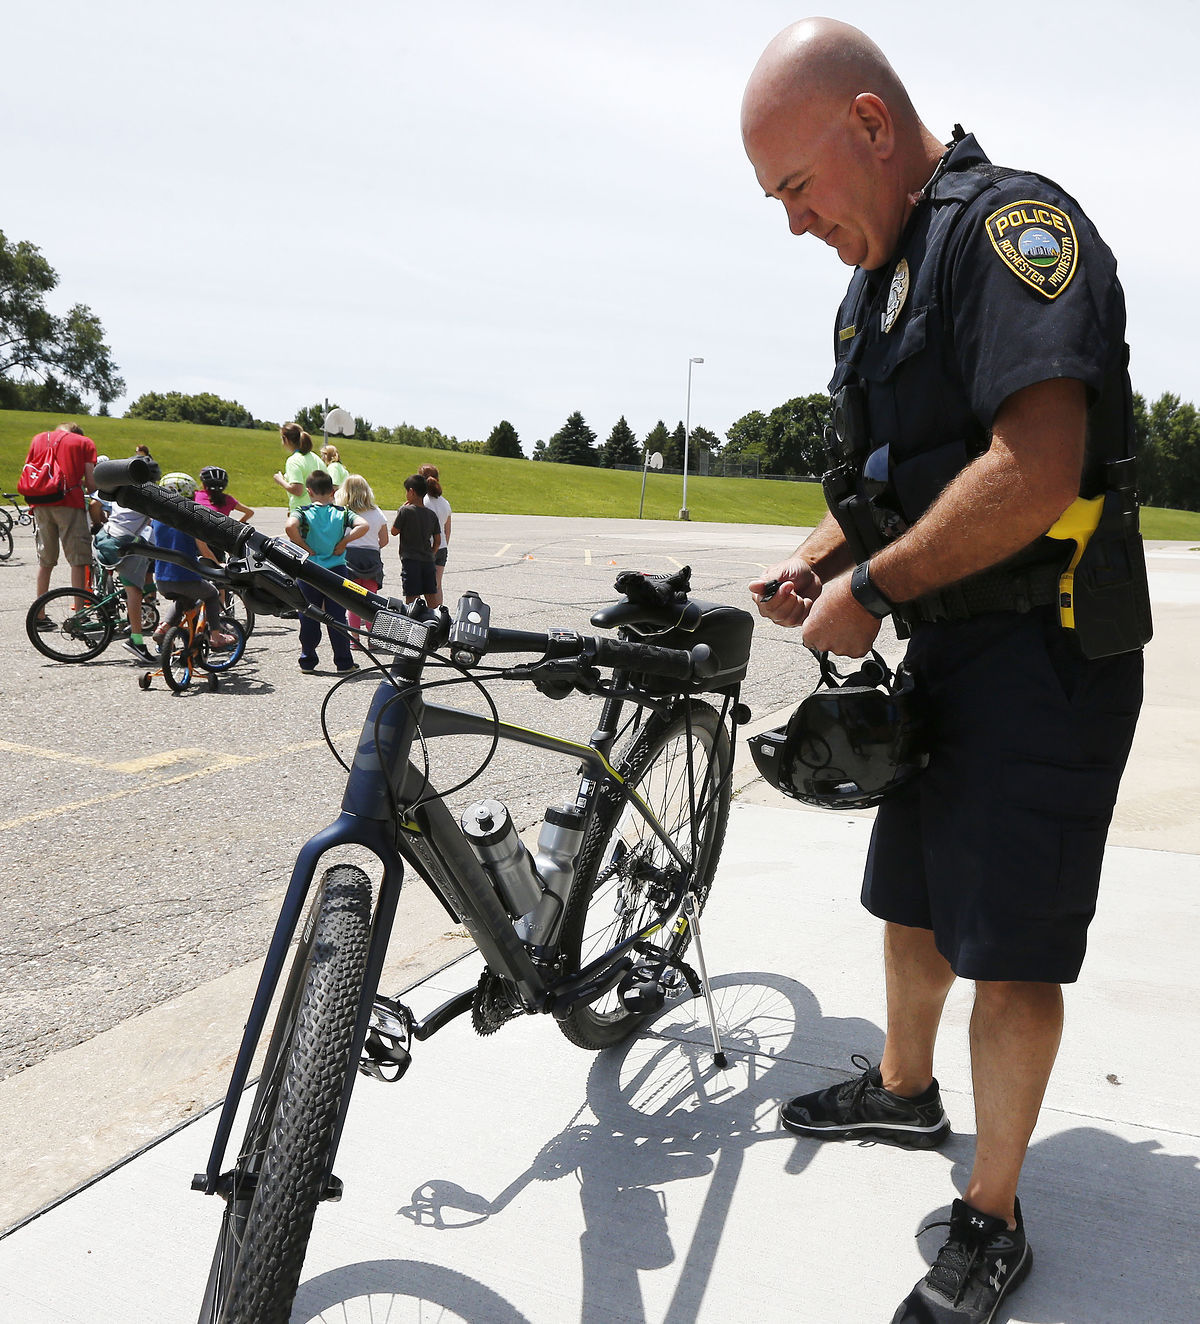 Bike patrol prepares to ride again